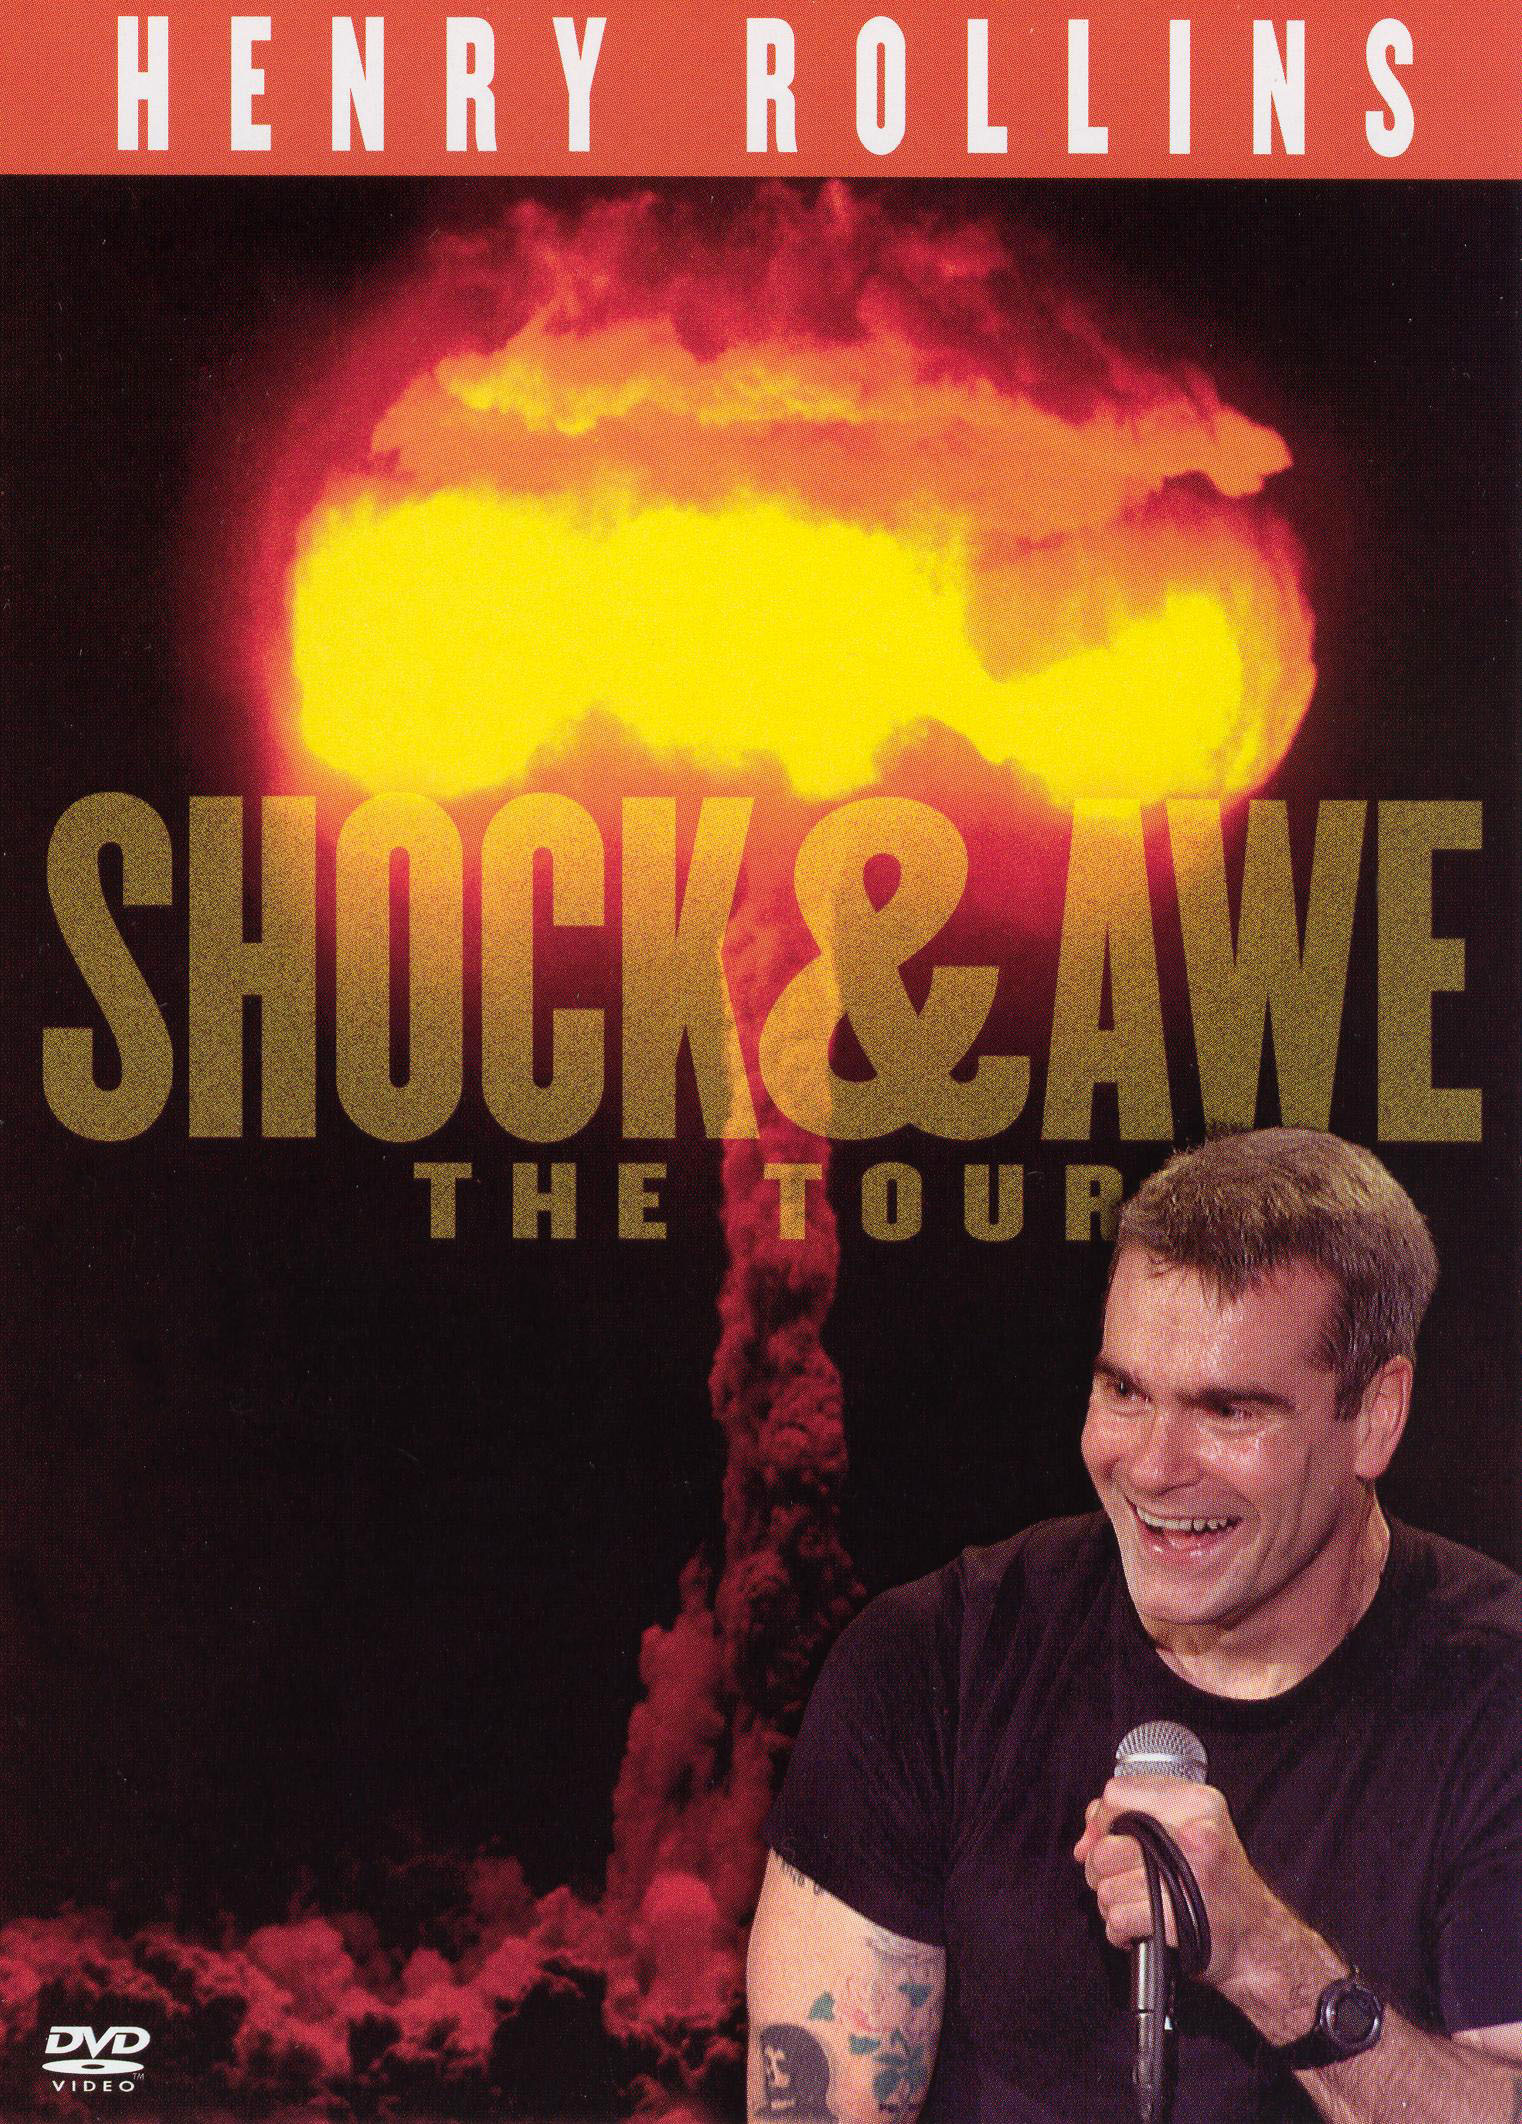 Henry Rollins: Shock & Awe - The Tour